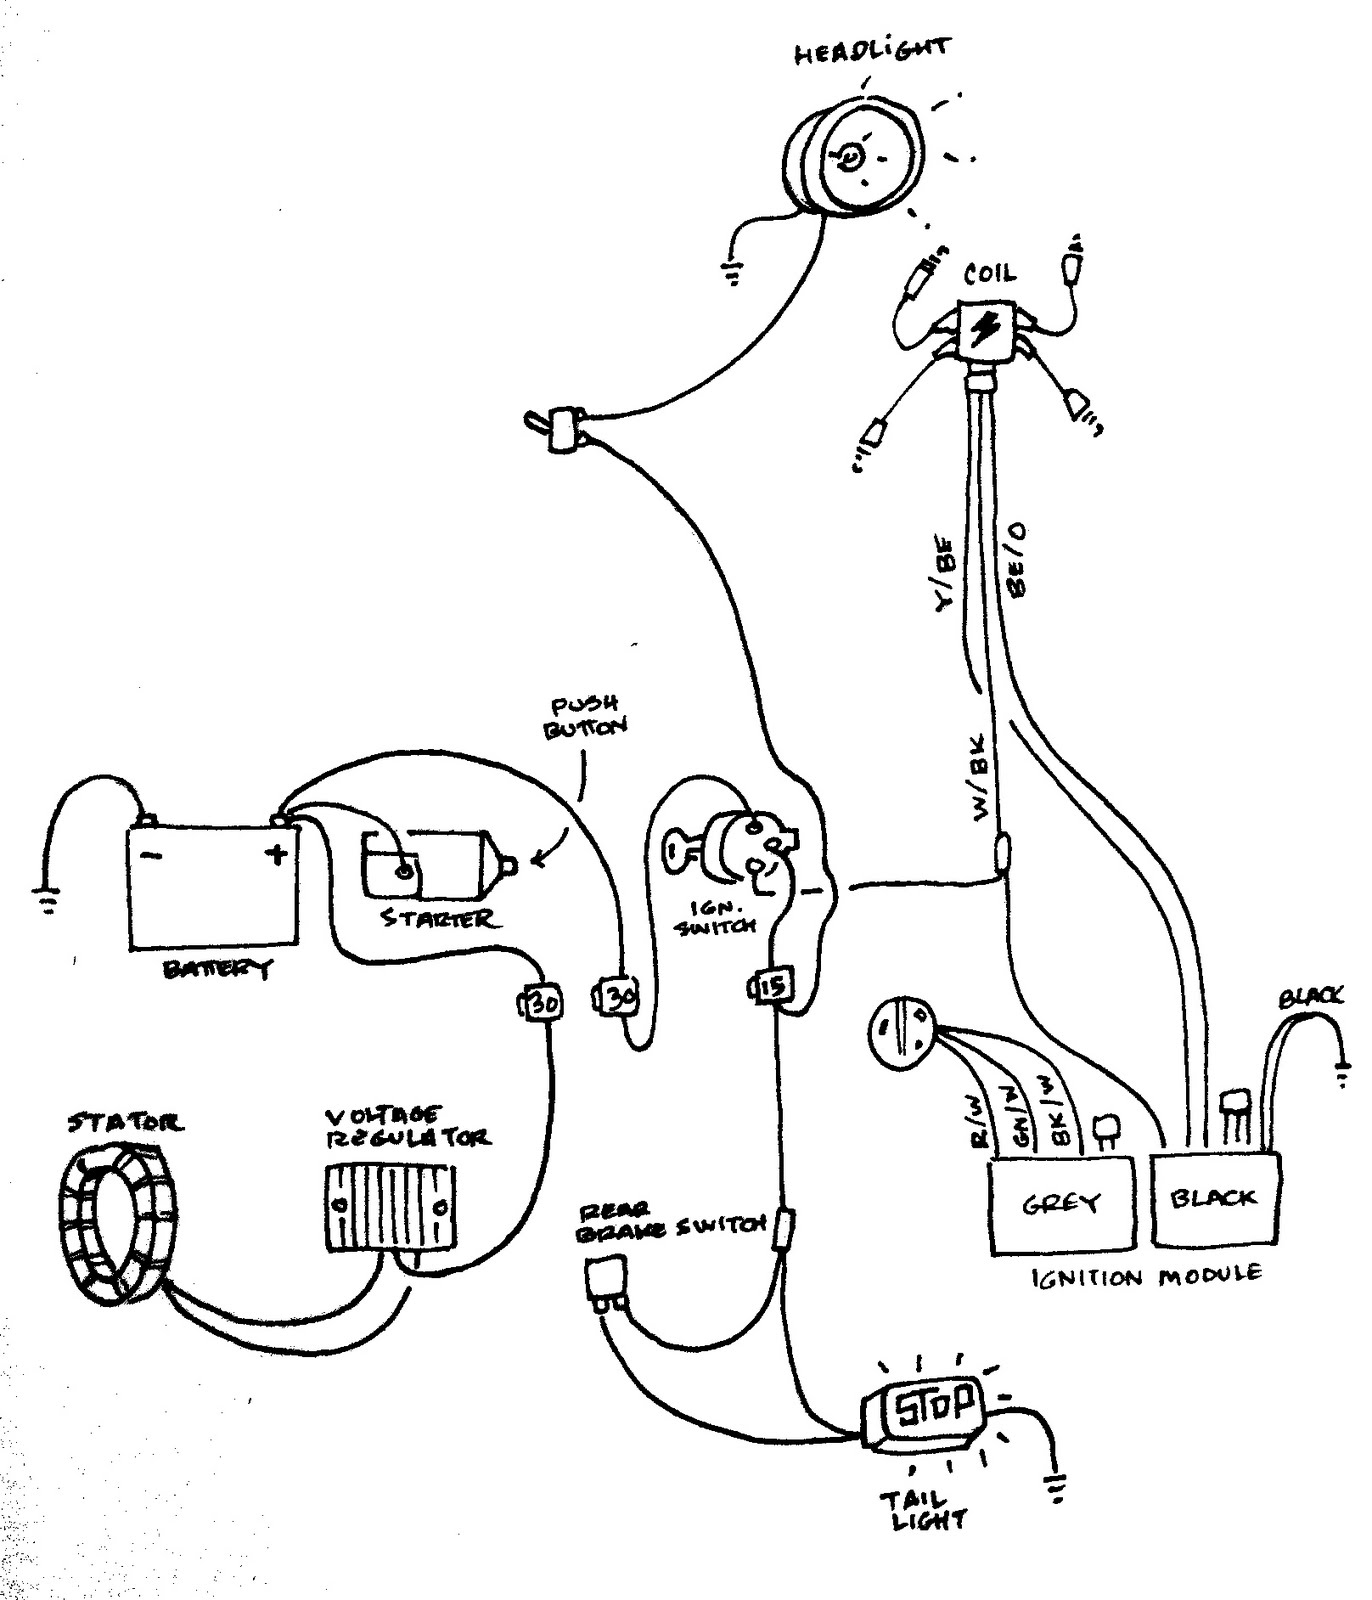 Simple Harley Wiring Diagram Kick Start